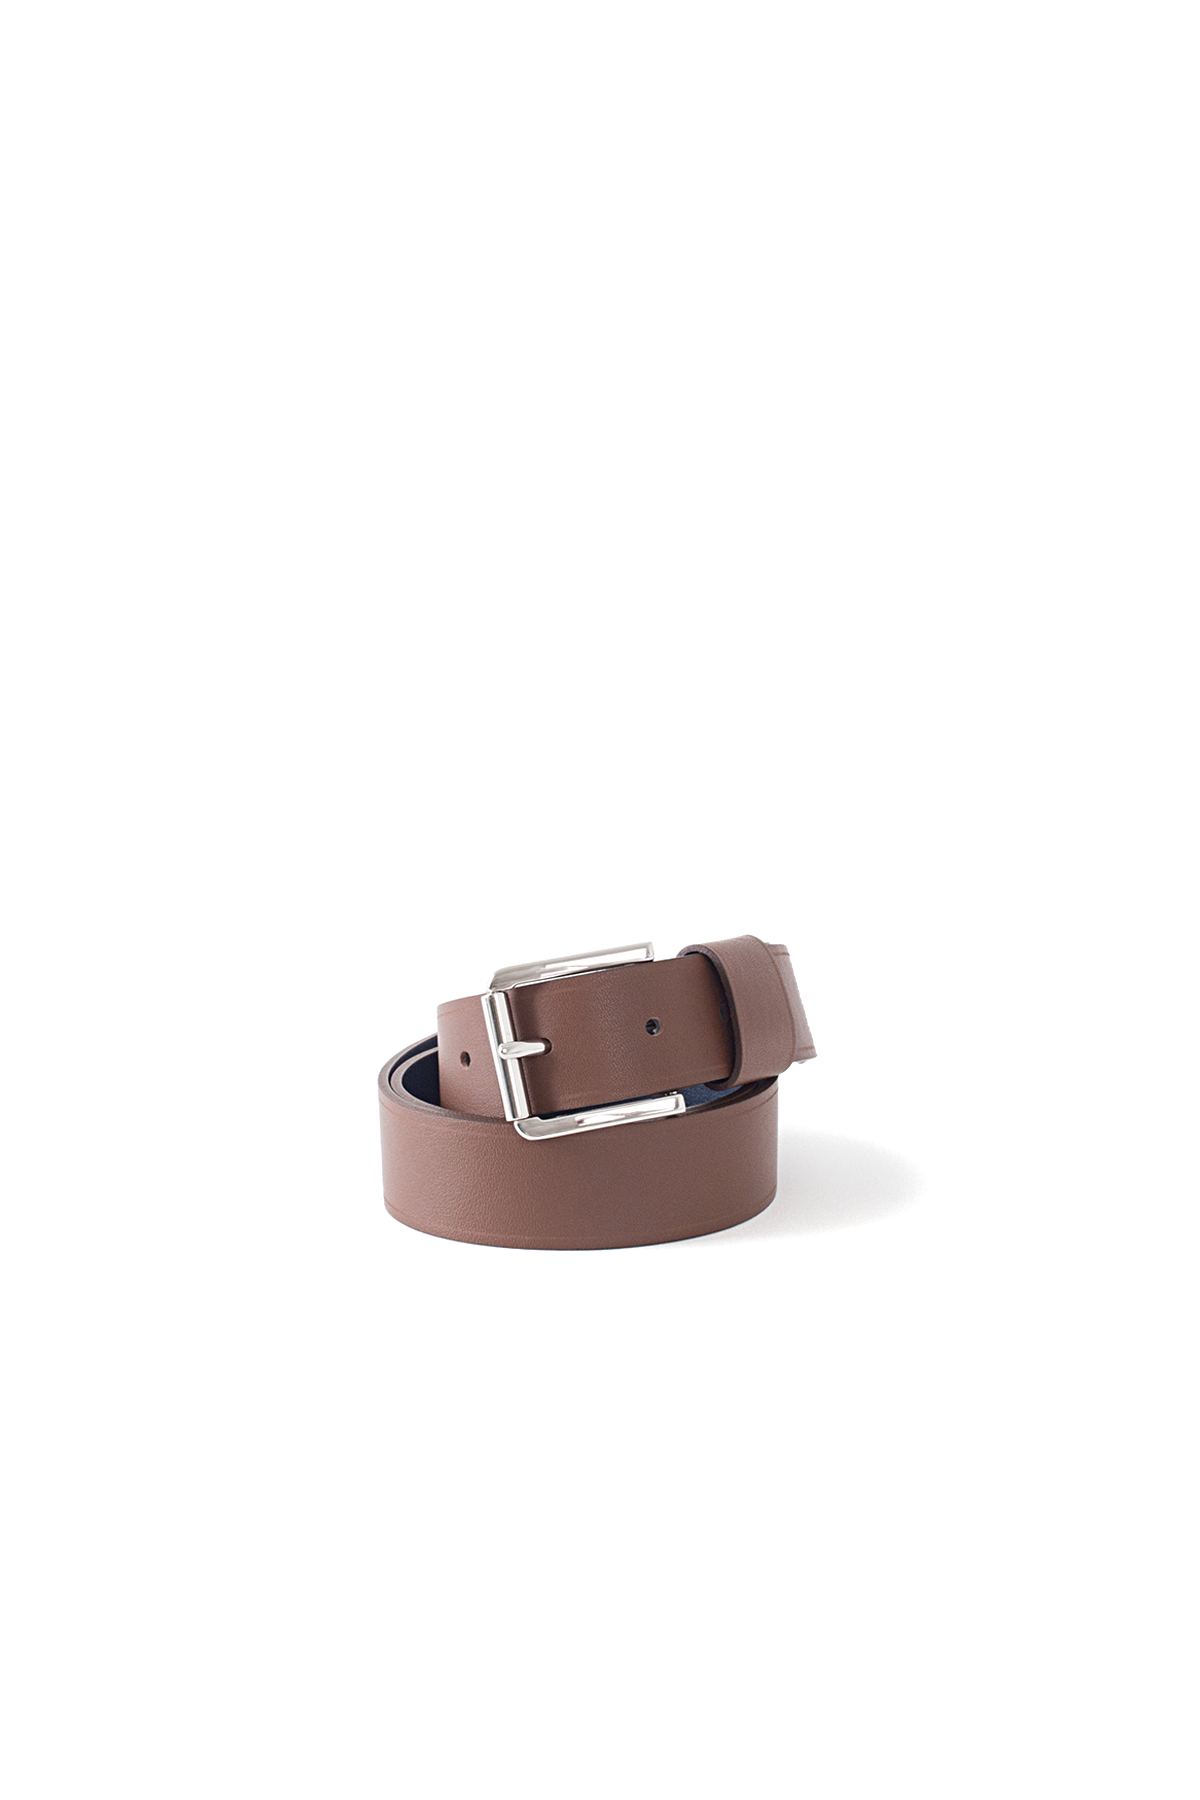 Sofie D'Hoore : Verdict 30 Bi Color Leather Belt (Cocoa/Night)